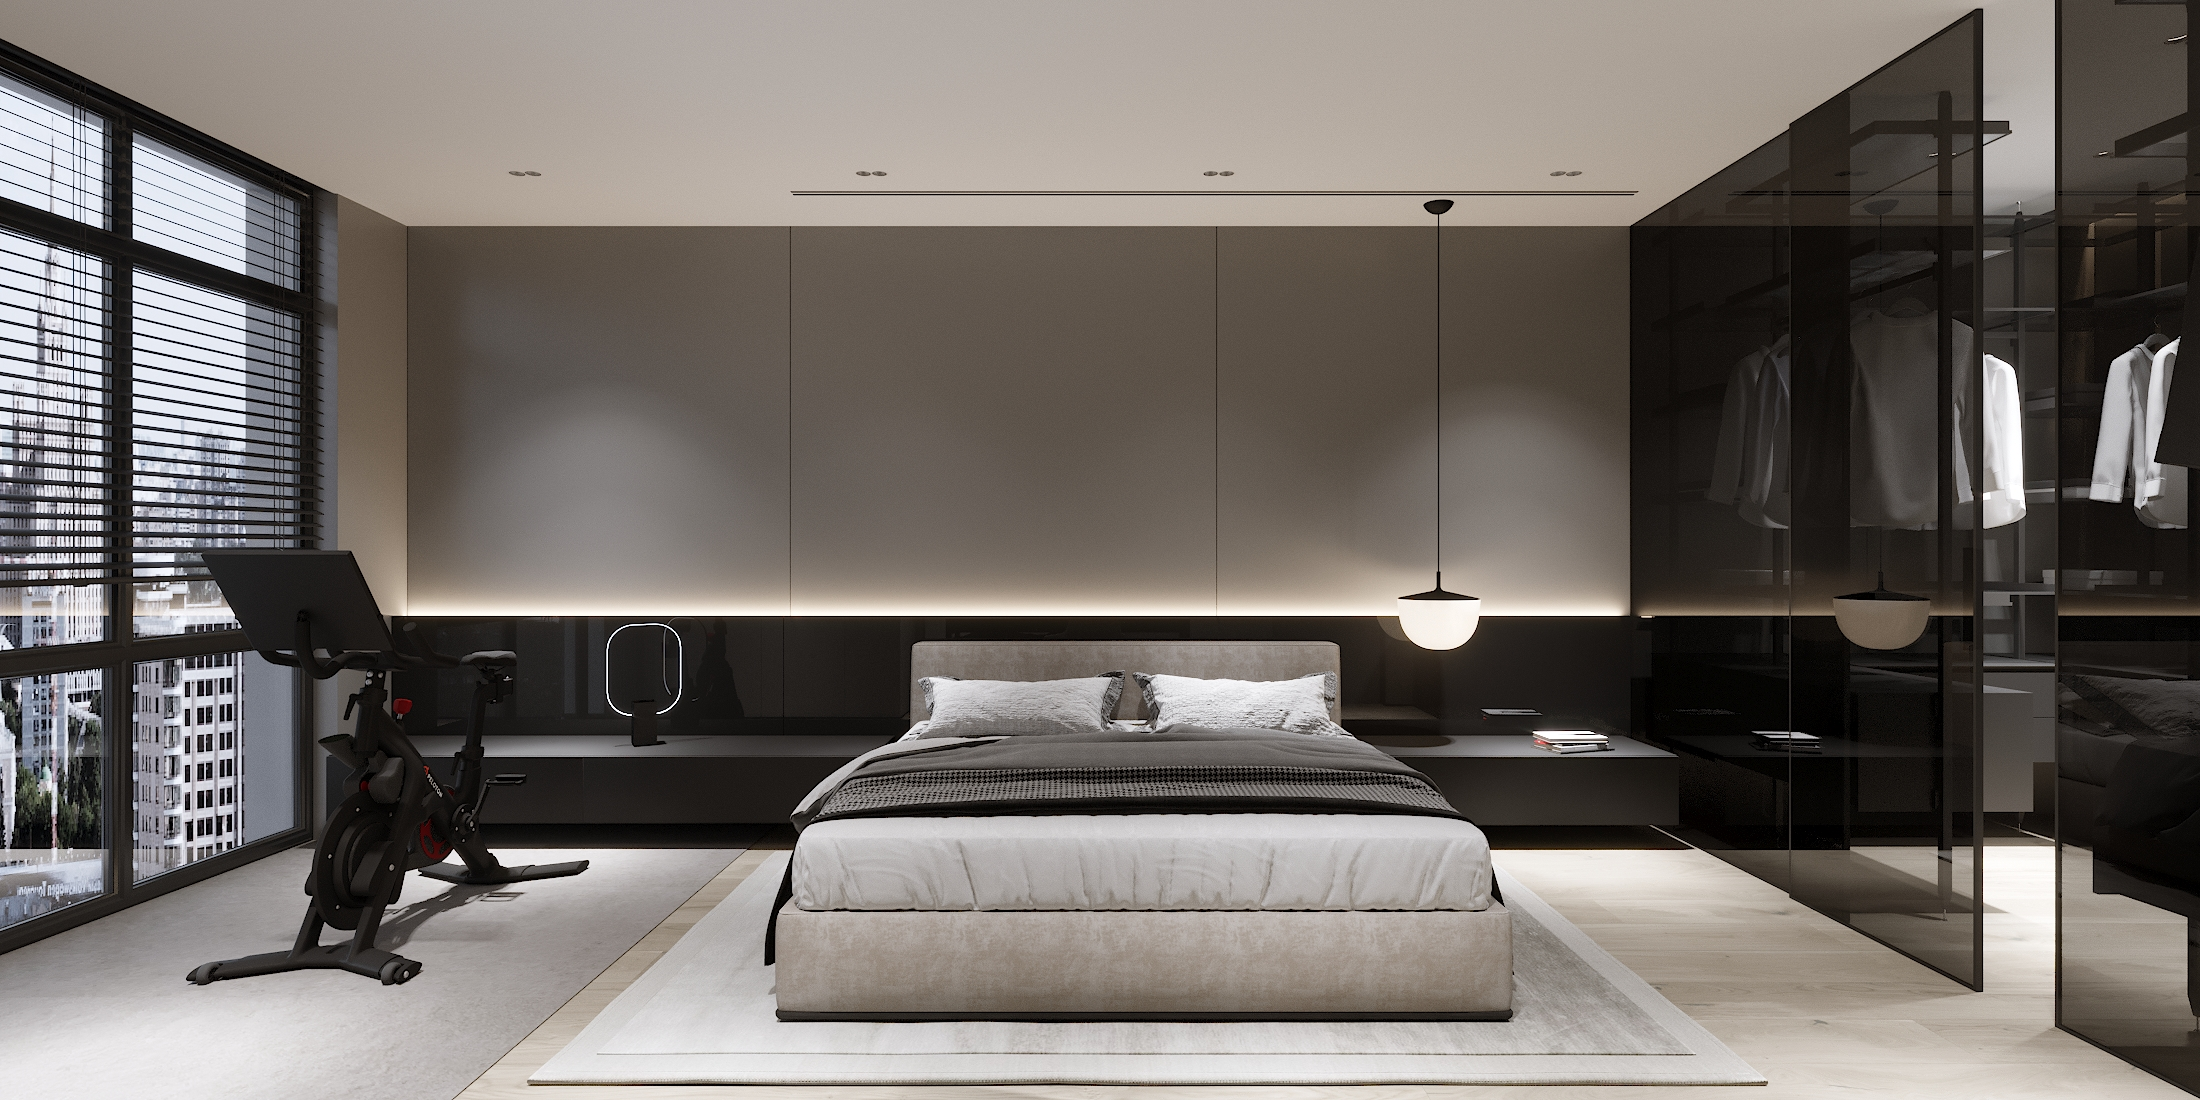 Shades of grey 1907 master bedroom_1